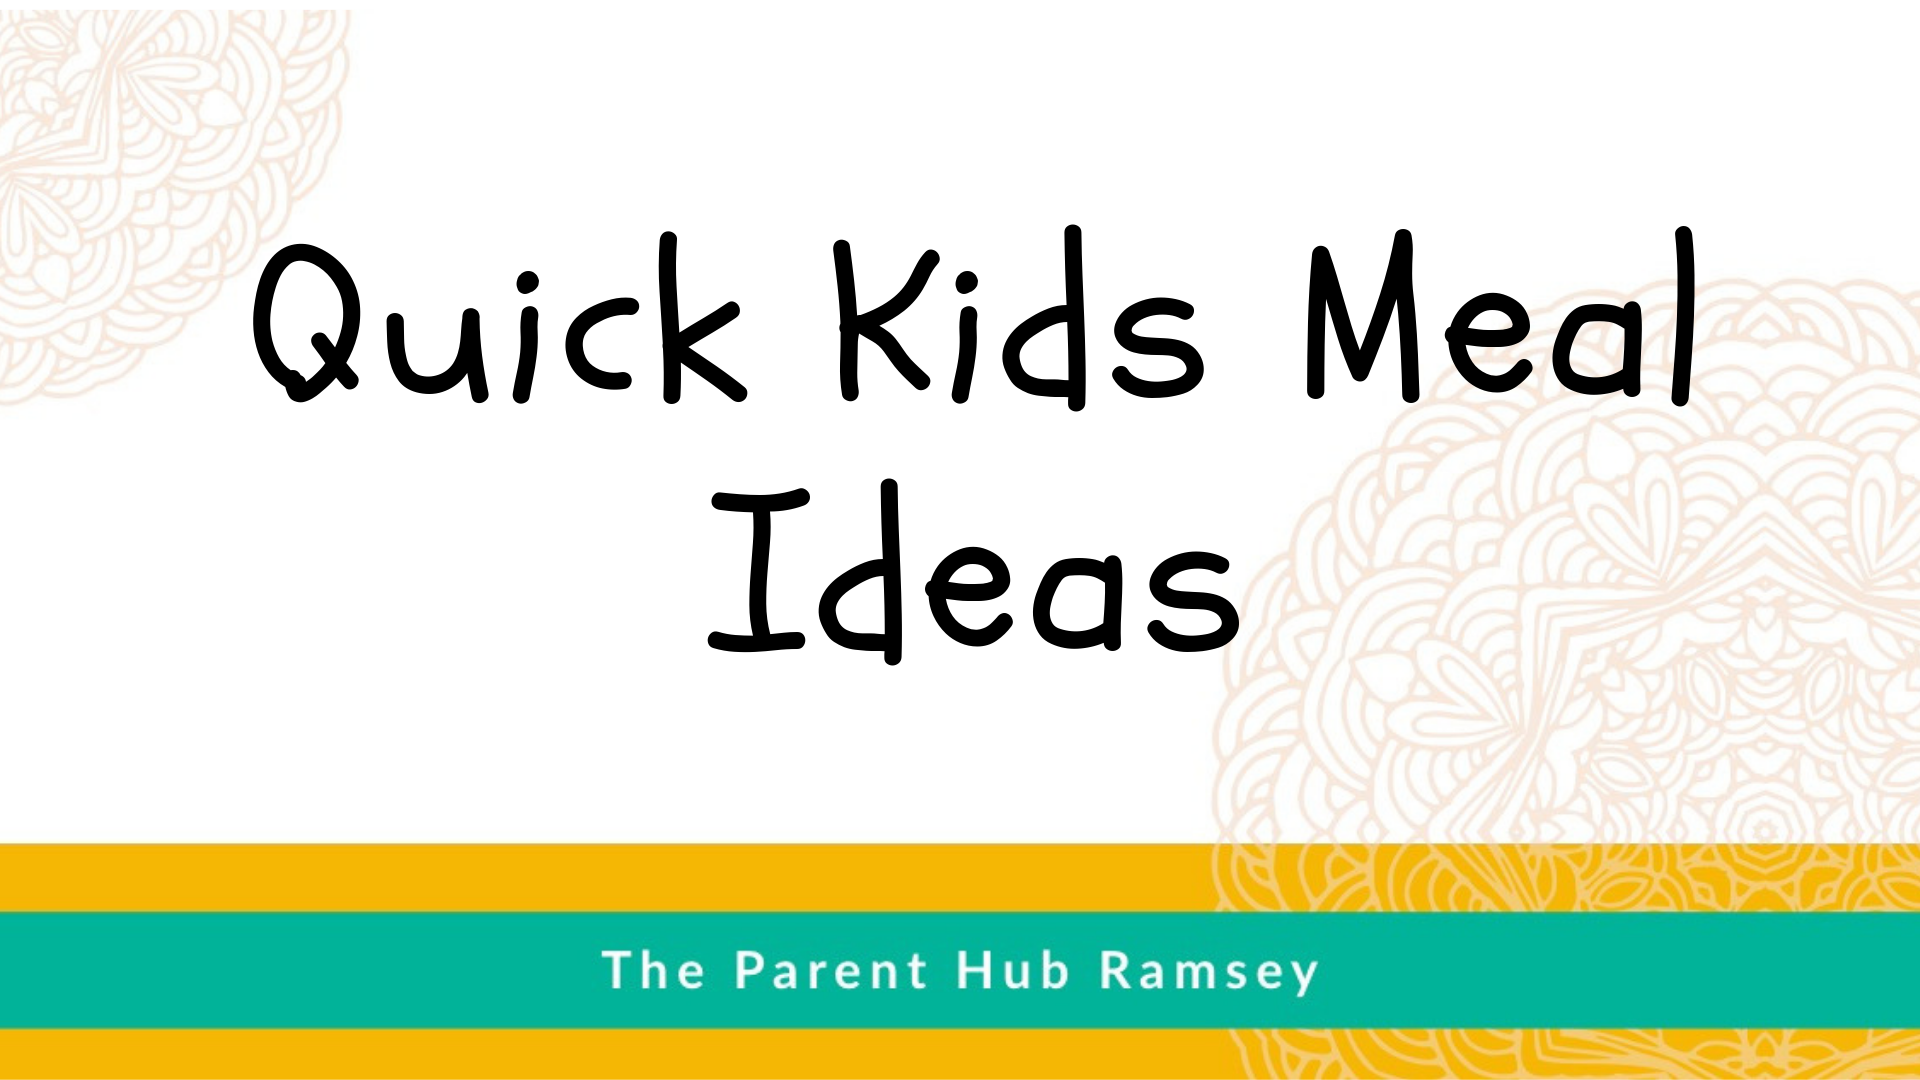 Quick Kids Meal Ideas